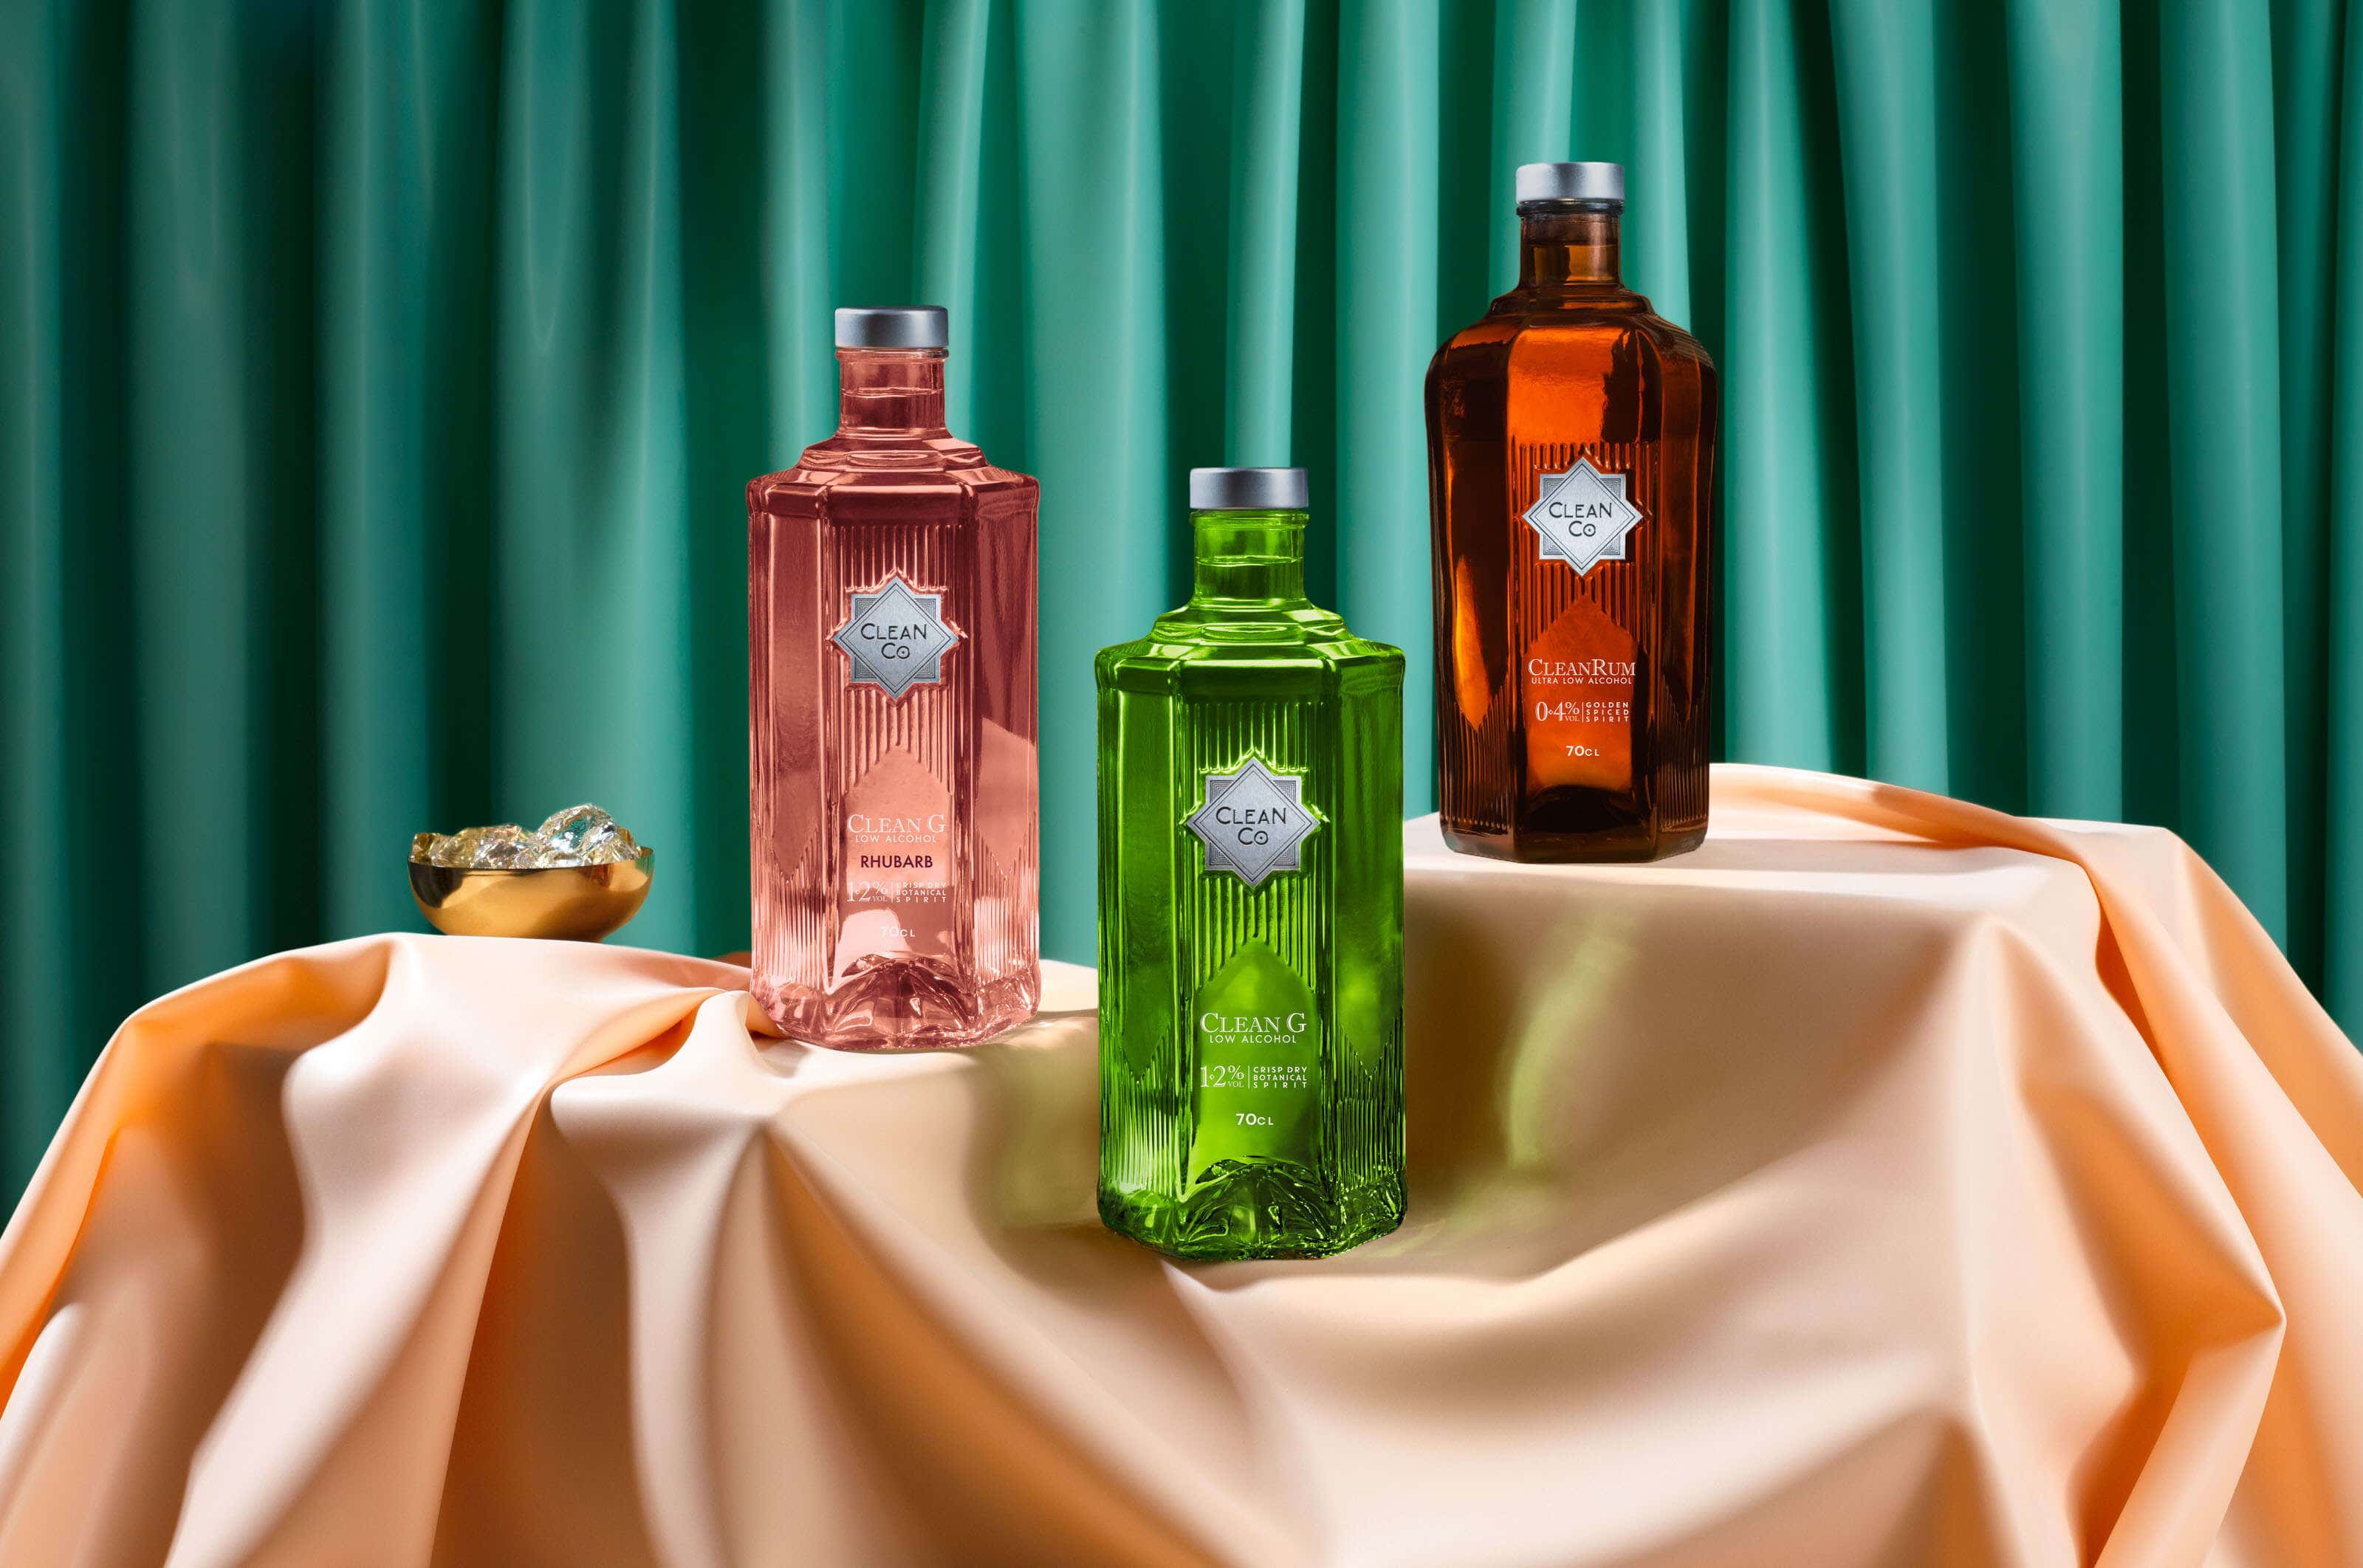 clean co bottles on a pink and green background